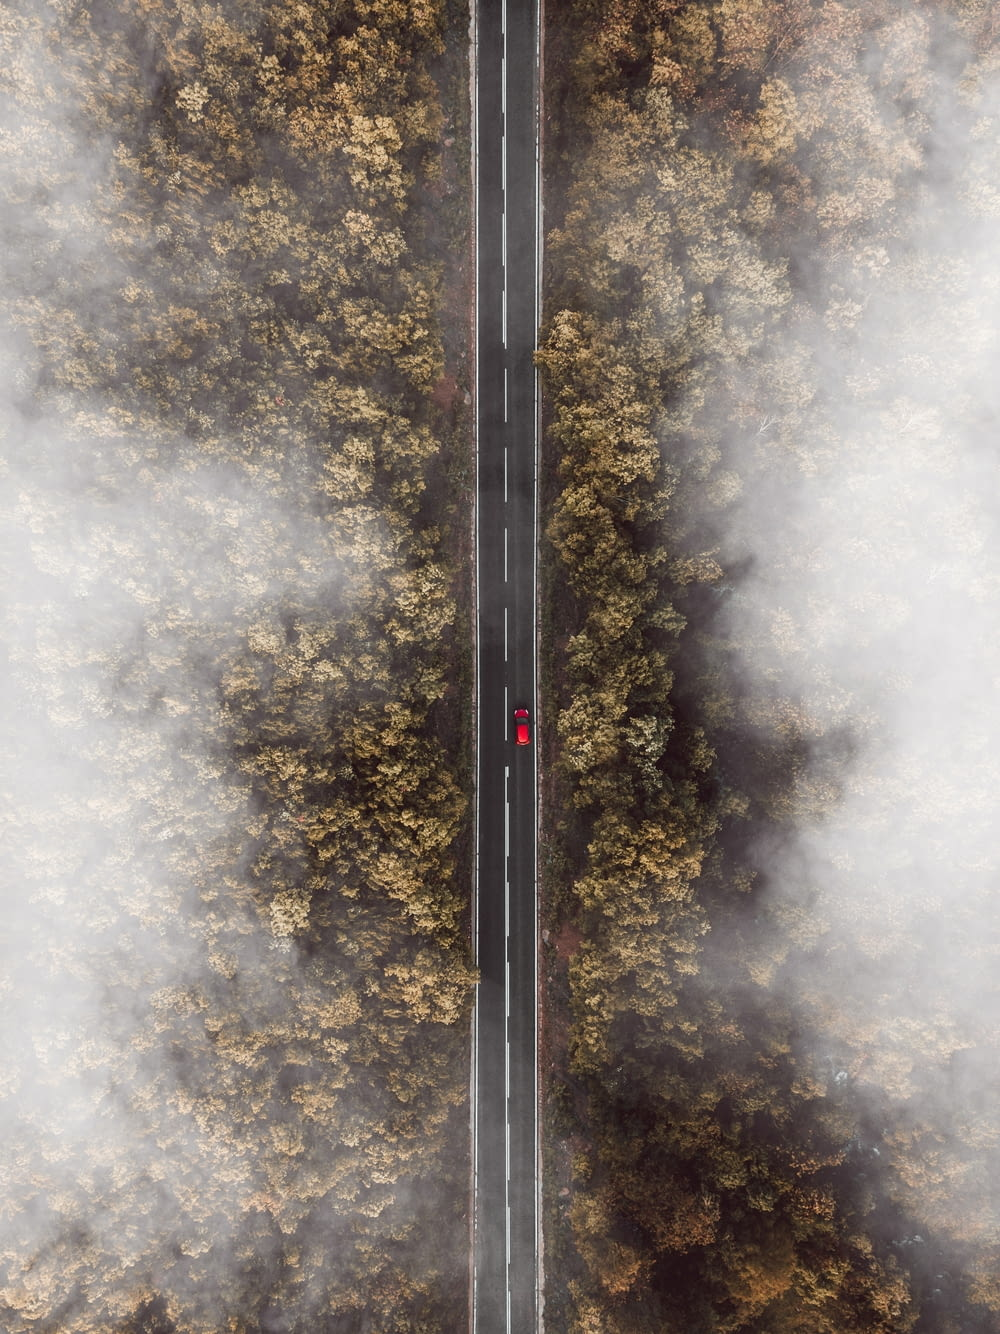 bird's-eye view photo of road besides forest